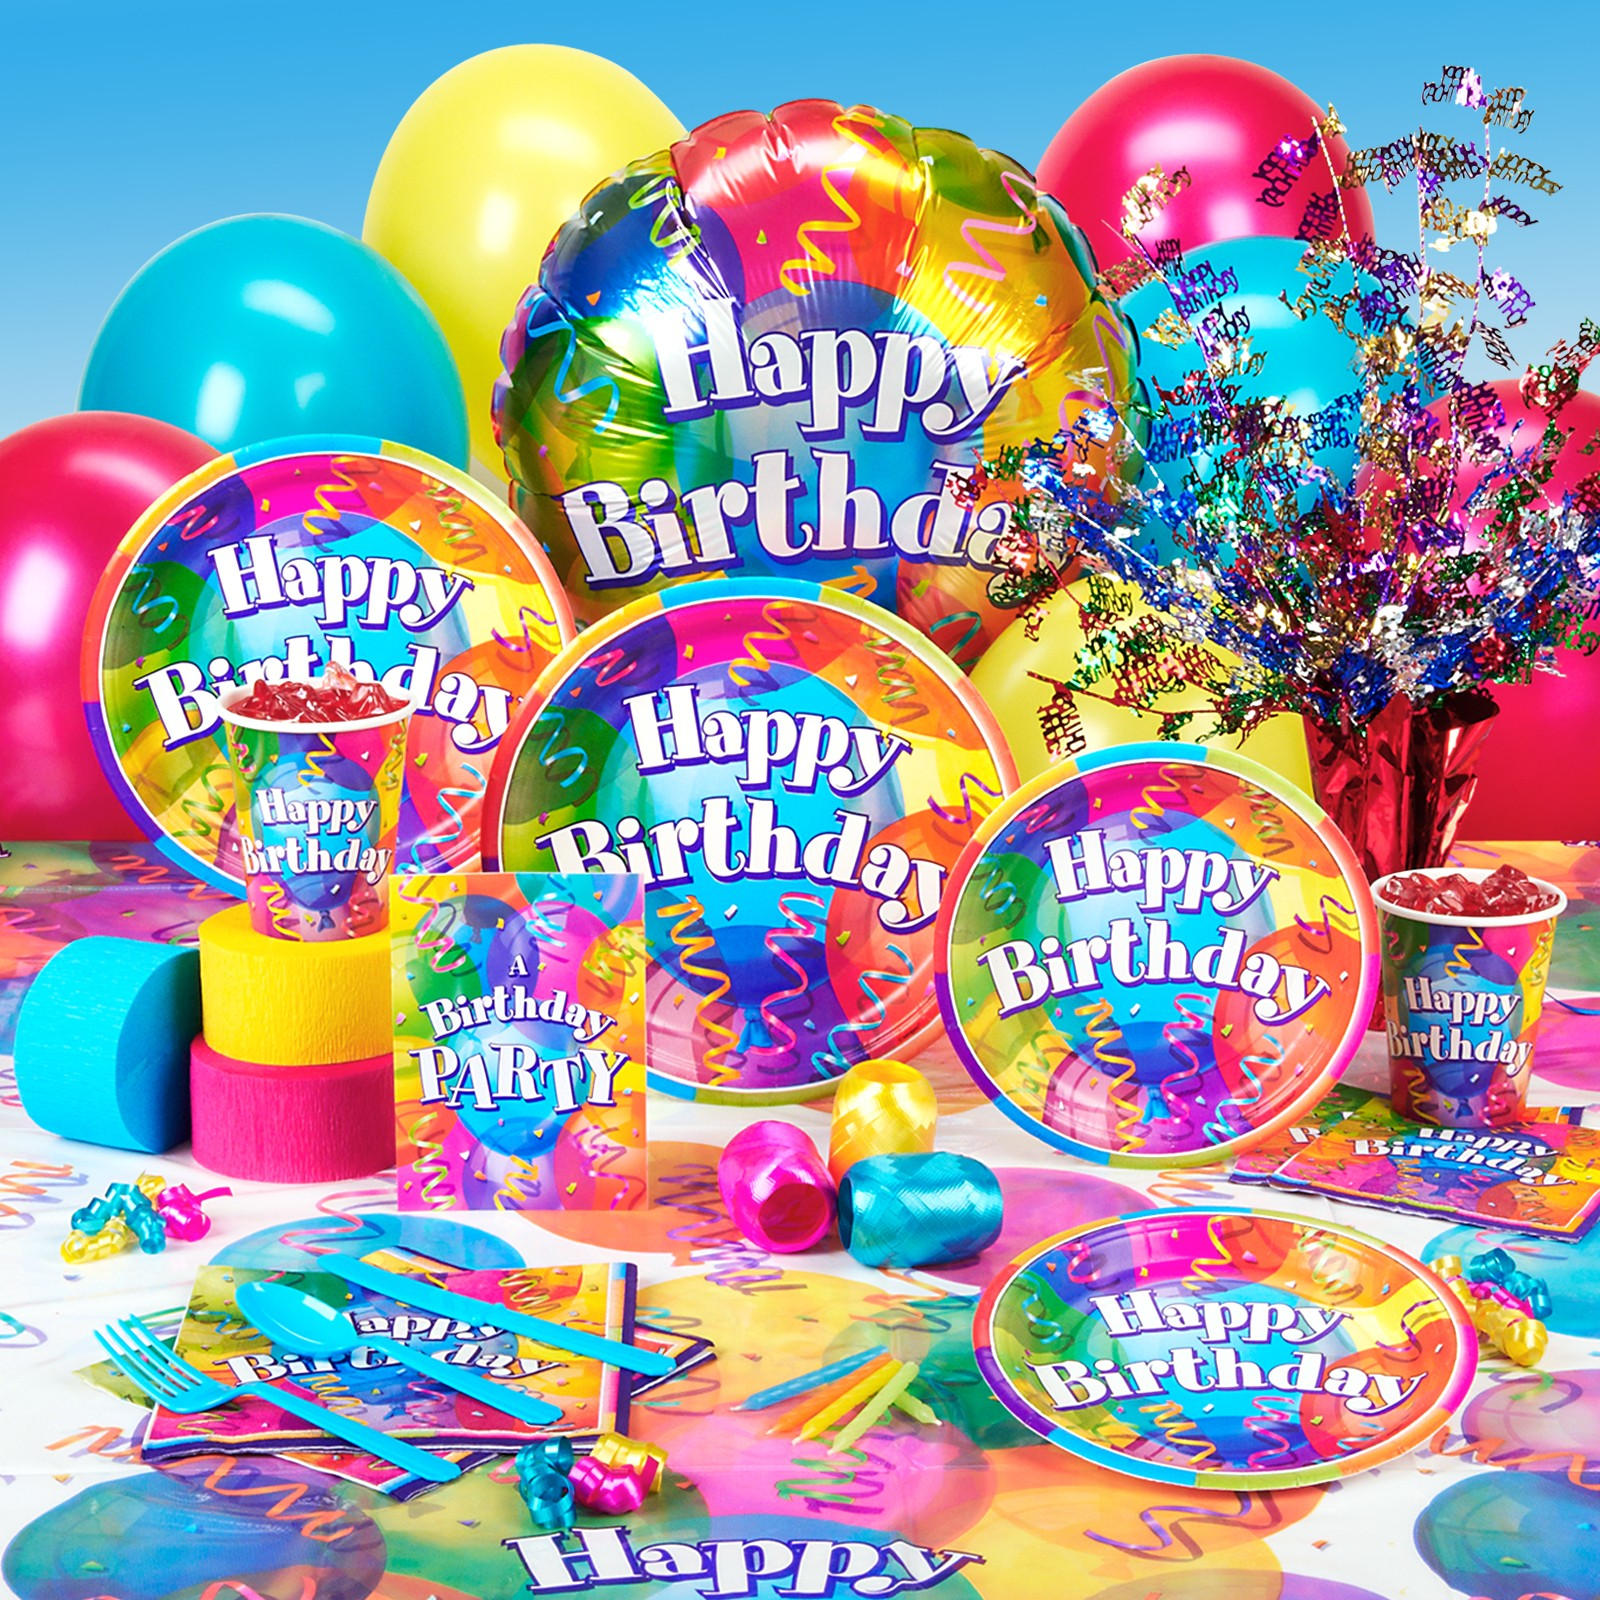 Free Birthday Stuff Website ~ Balloons china is a based manufacturer of latex